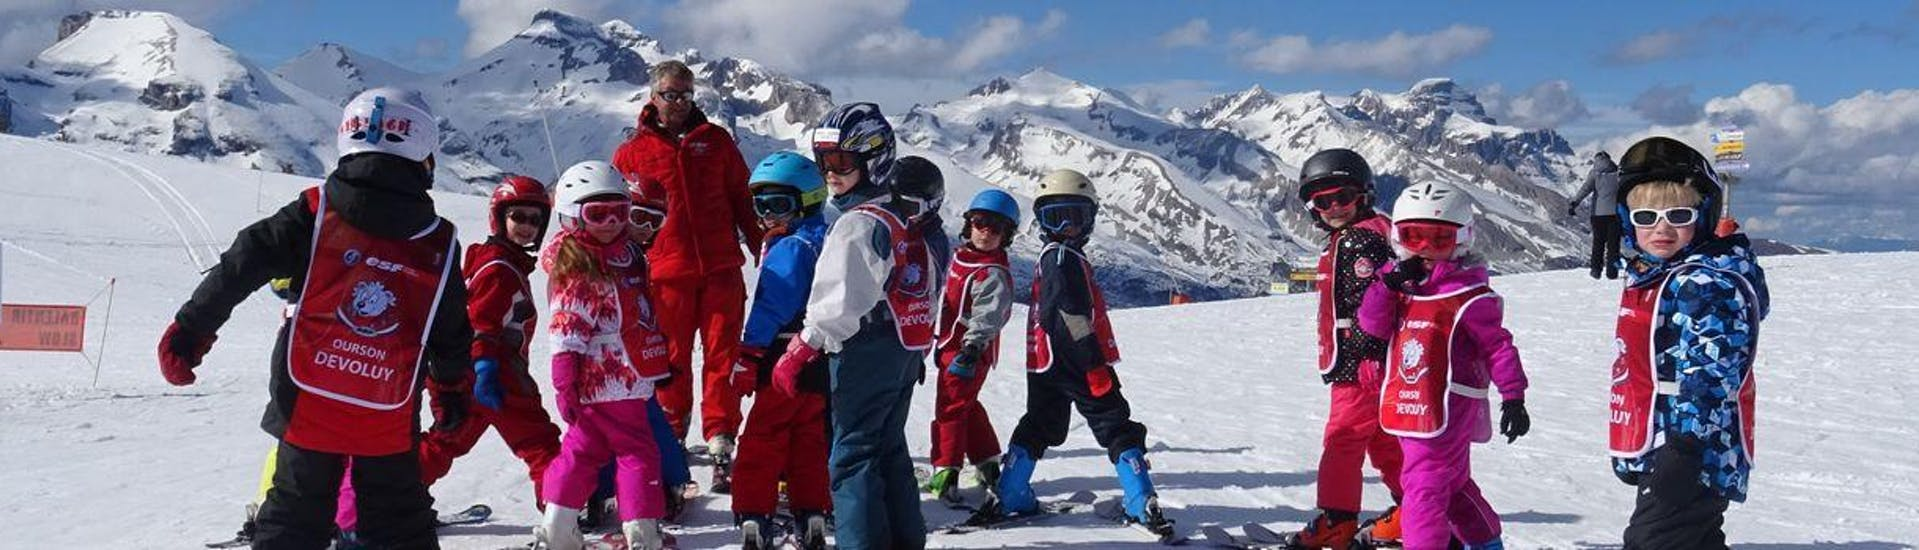 Kids are standing at the top of the slopes ready to start their Kids Ski Lessons (6-12 years) - Beginner with the ski school ESF du Dévoluy.